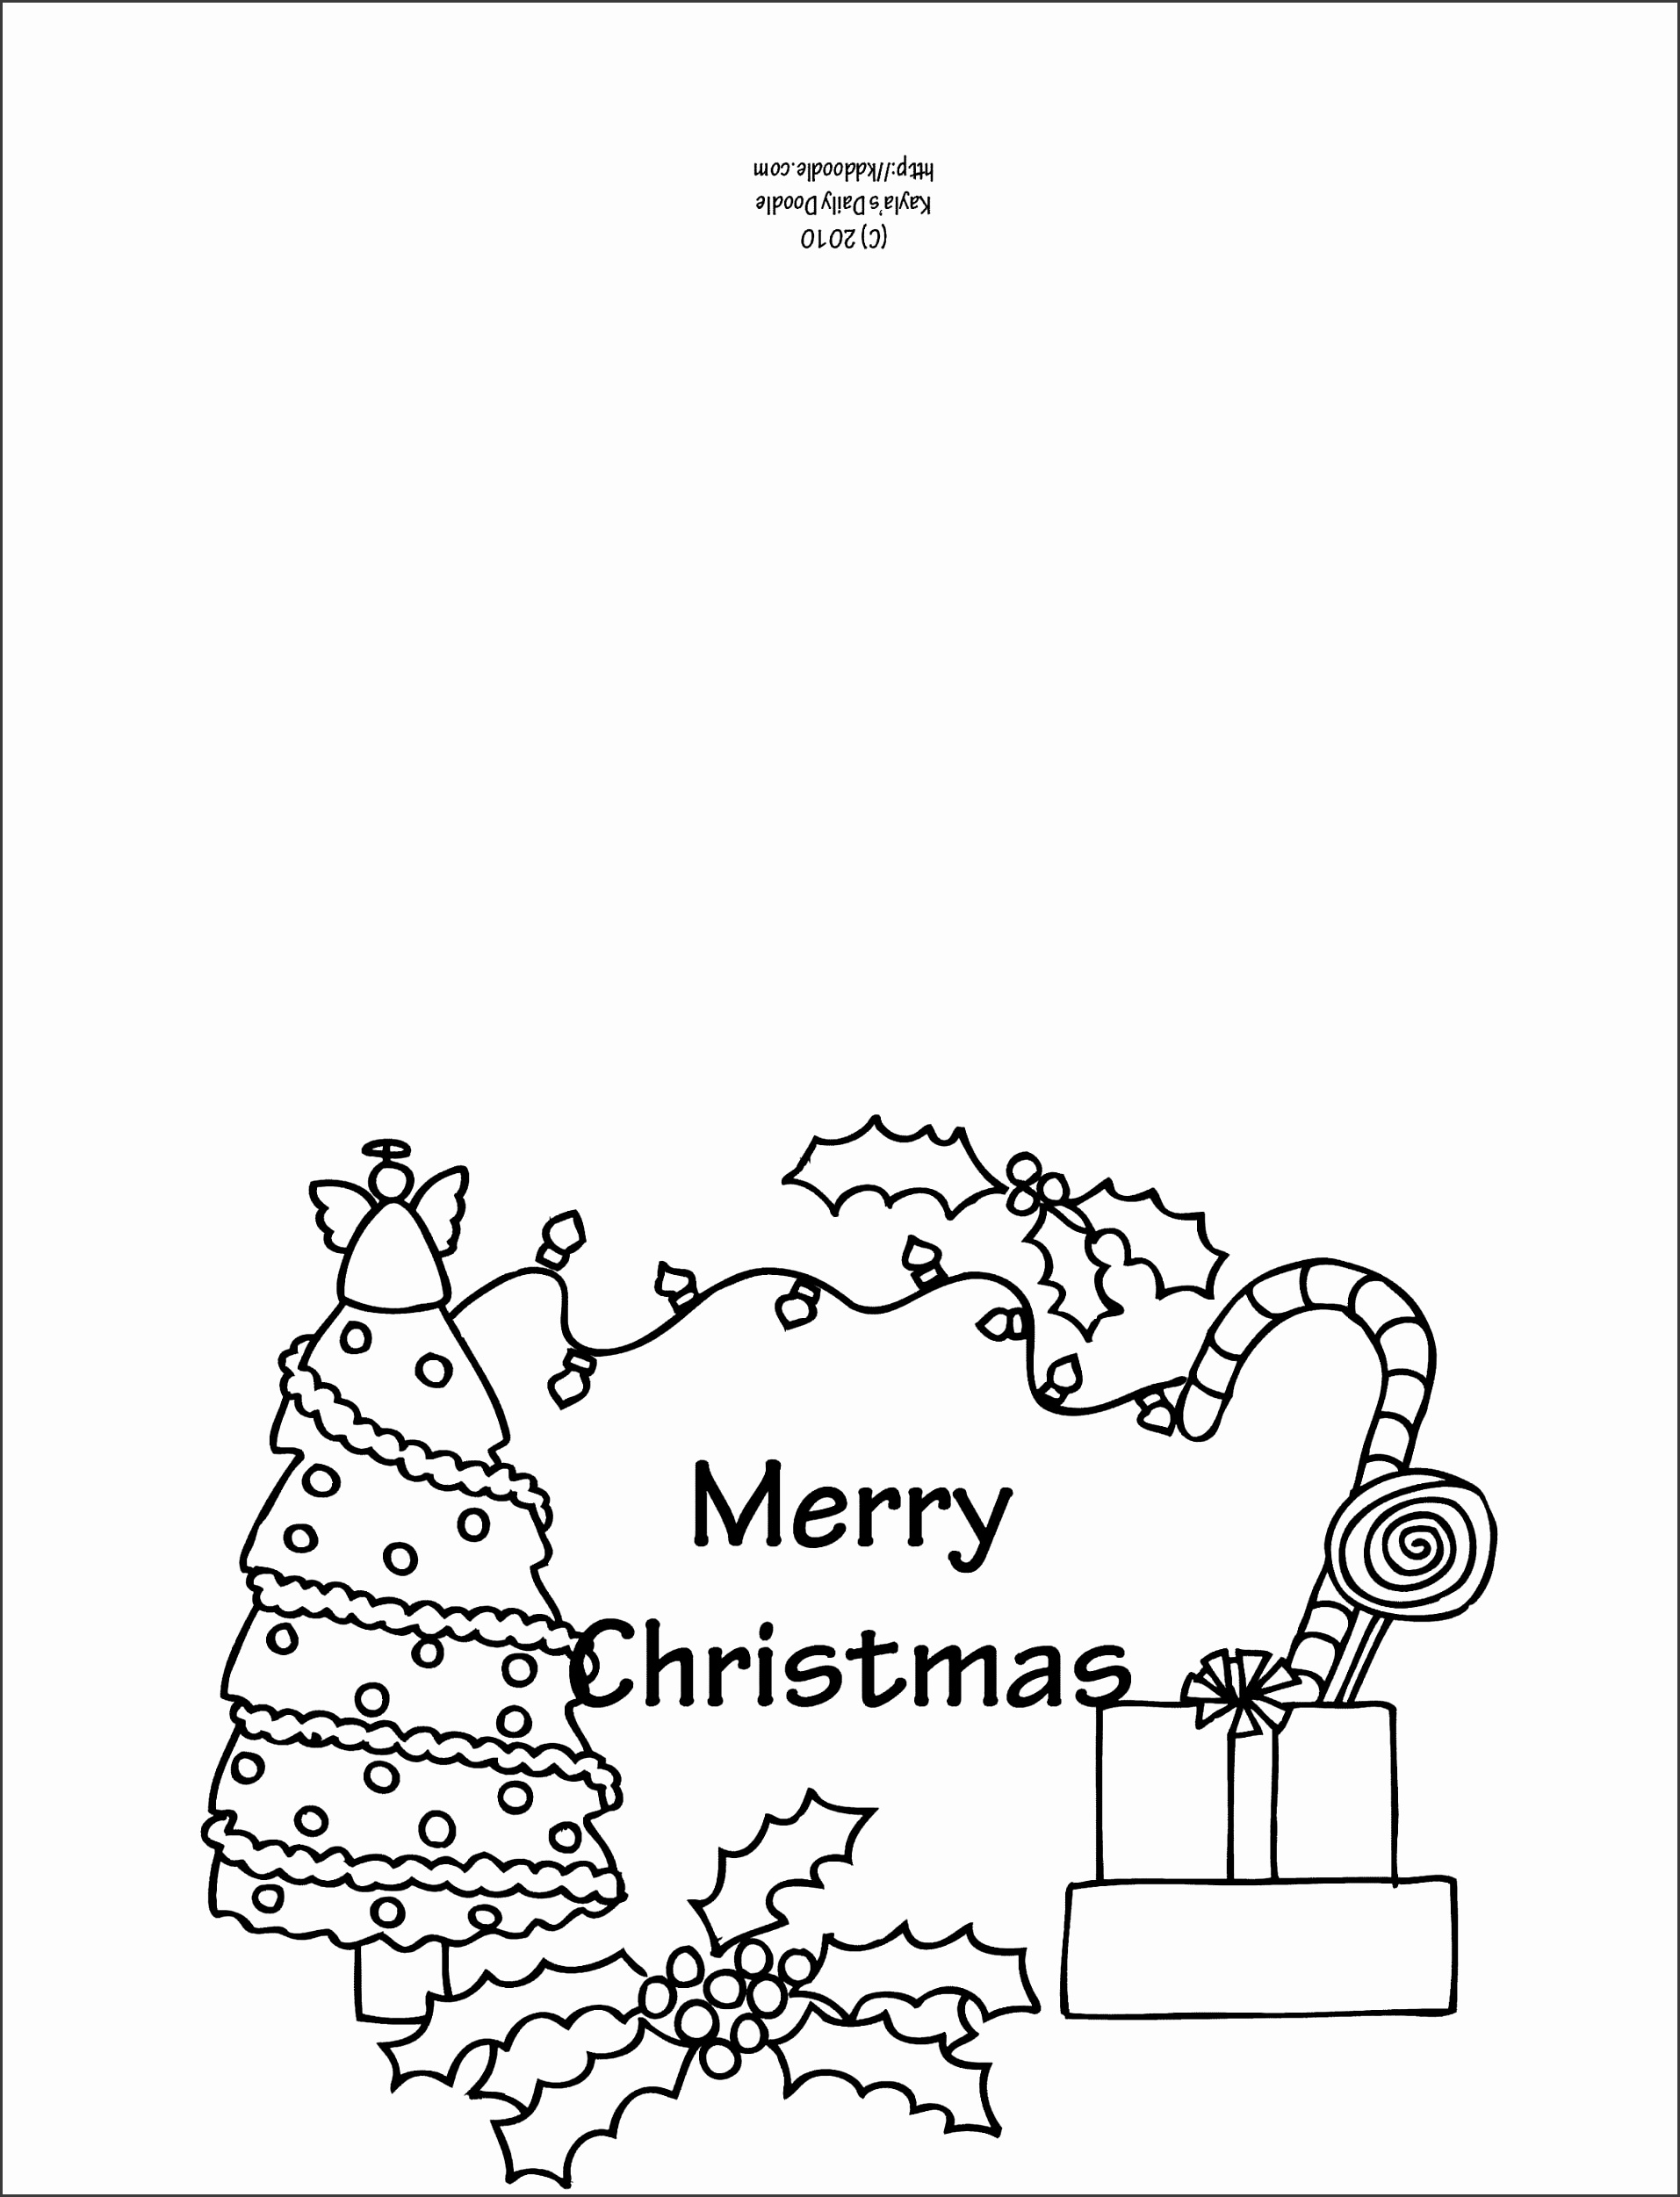 Sheets Christmas Black And White Christmas Card Templates Free inside Black And White Christmas Card Templates